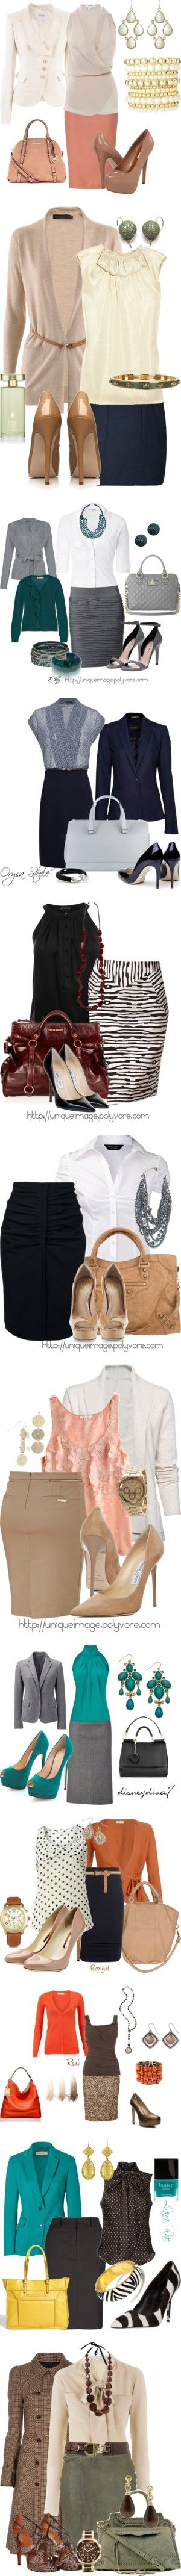 love these work outfit ideas!